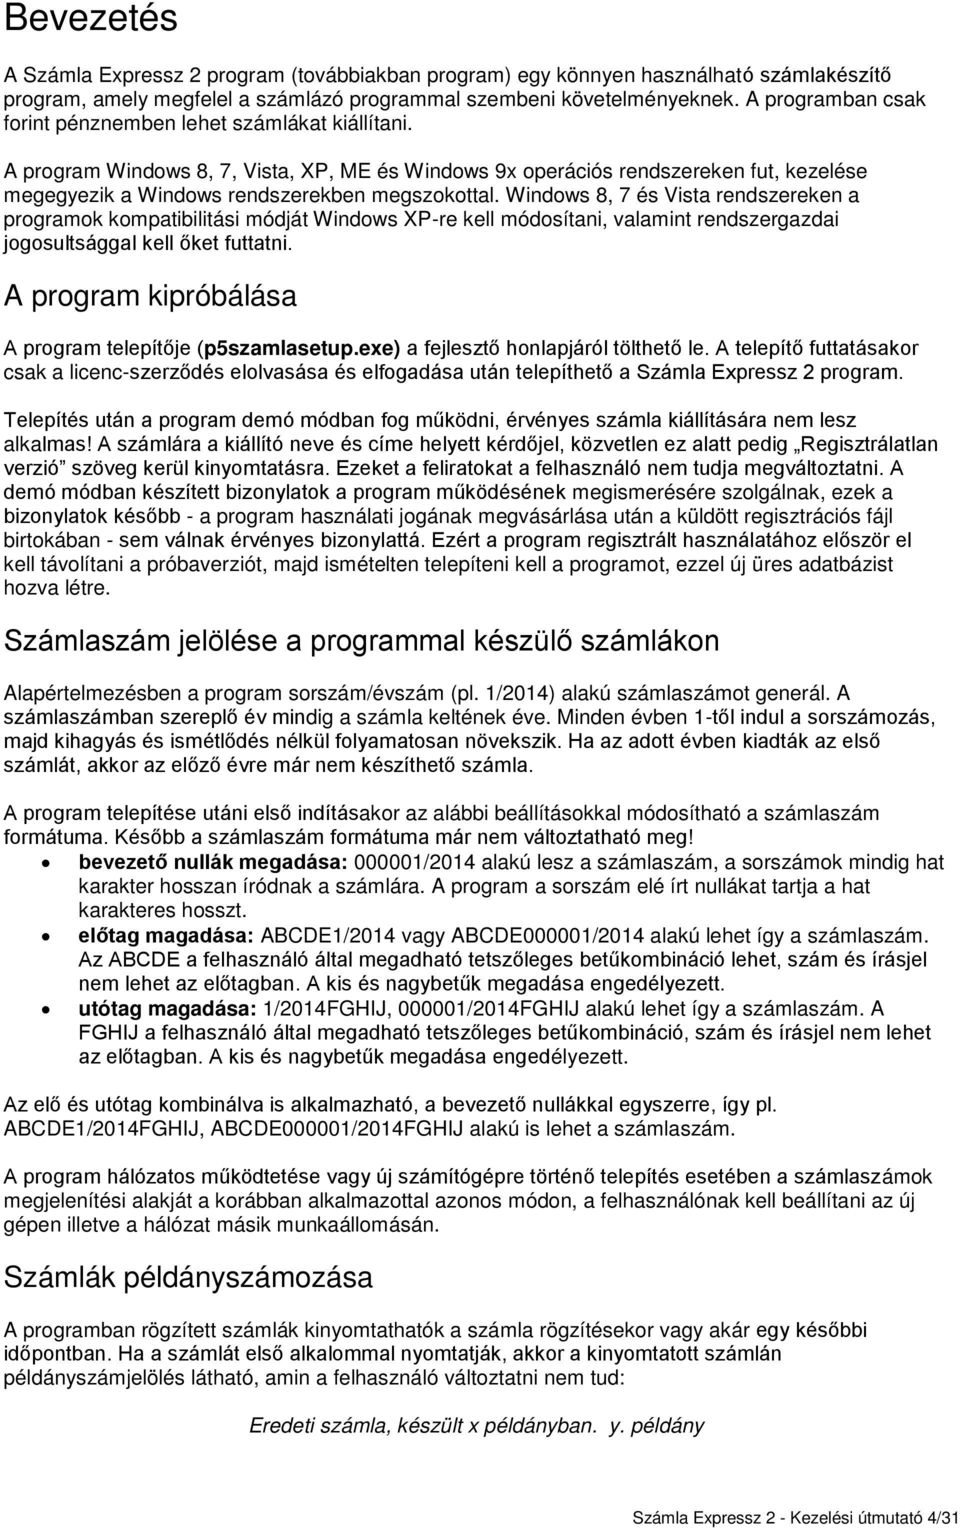 A program Windows 8, 7, Vista, XP, ME és Windows 9x operációs rendszereken fut, kezelése megegyezik a Windows rendszerekben megszokottal.